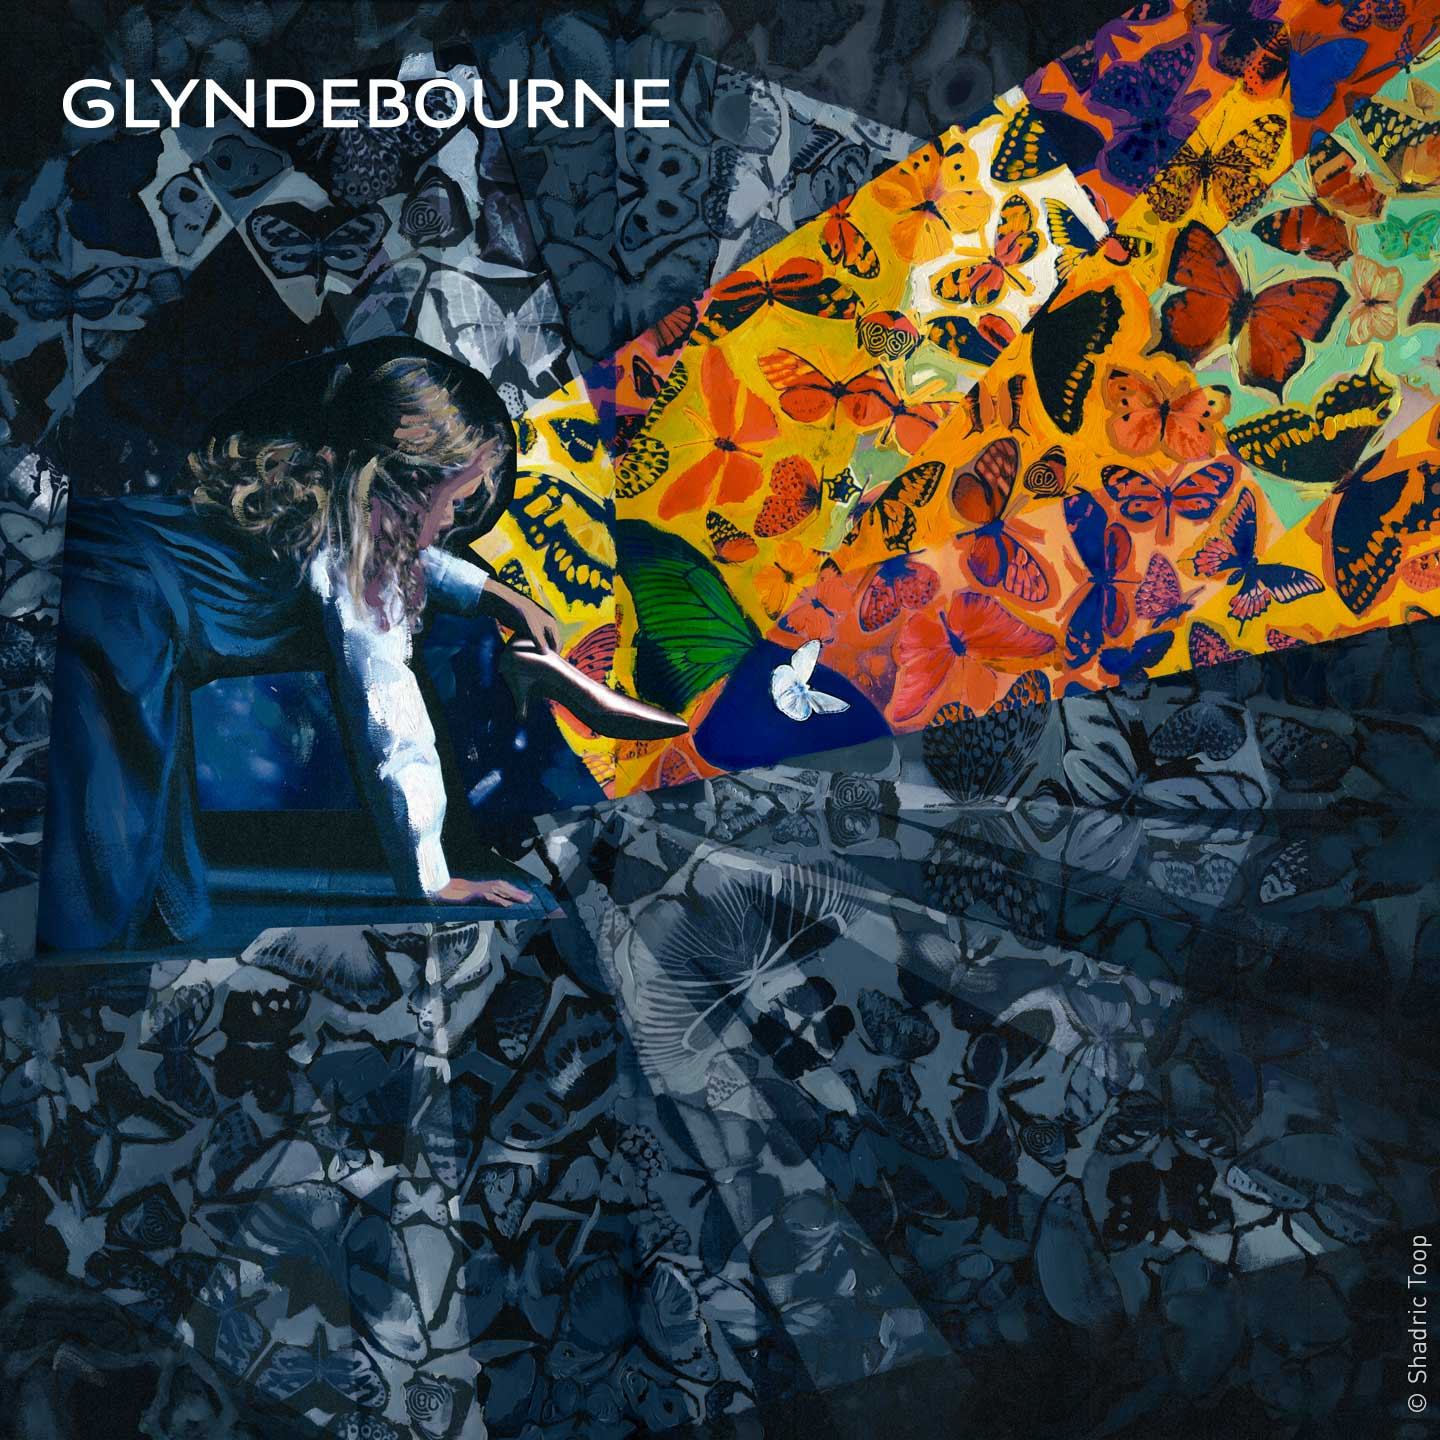 Glyndebourne Festival 2019 Cendrillon illustration showing a young Cinderella amongst an abstract background of painted butterflies